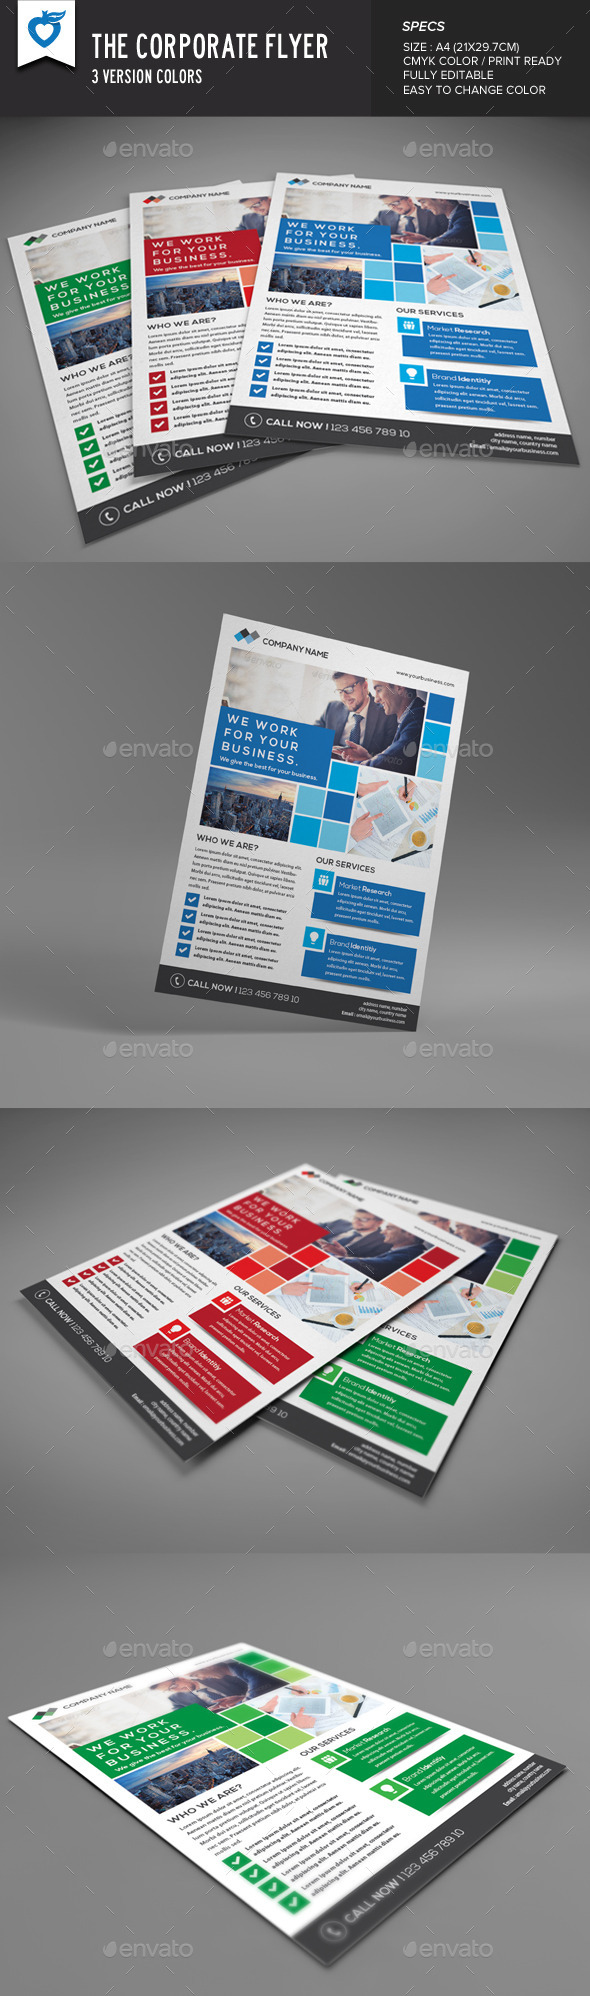 GraphicRiver The Corporate Flyer 8890948